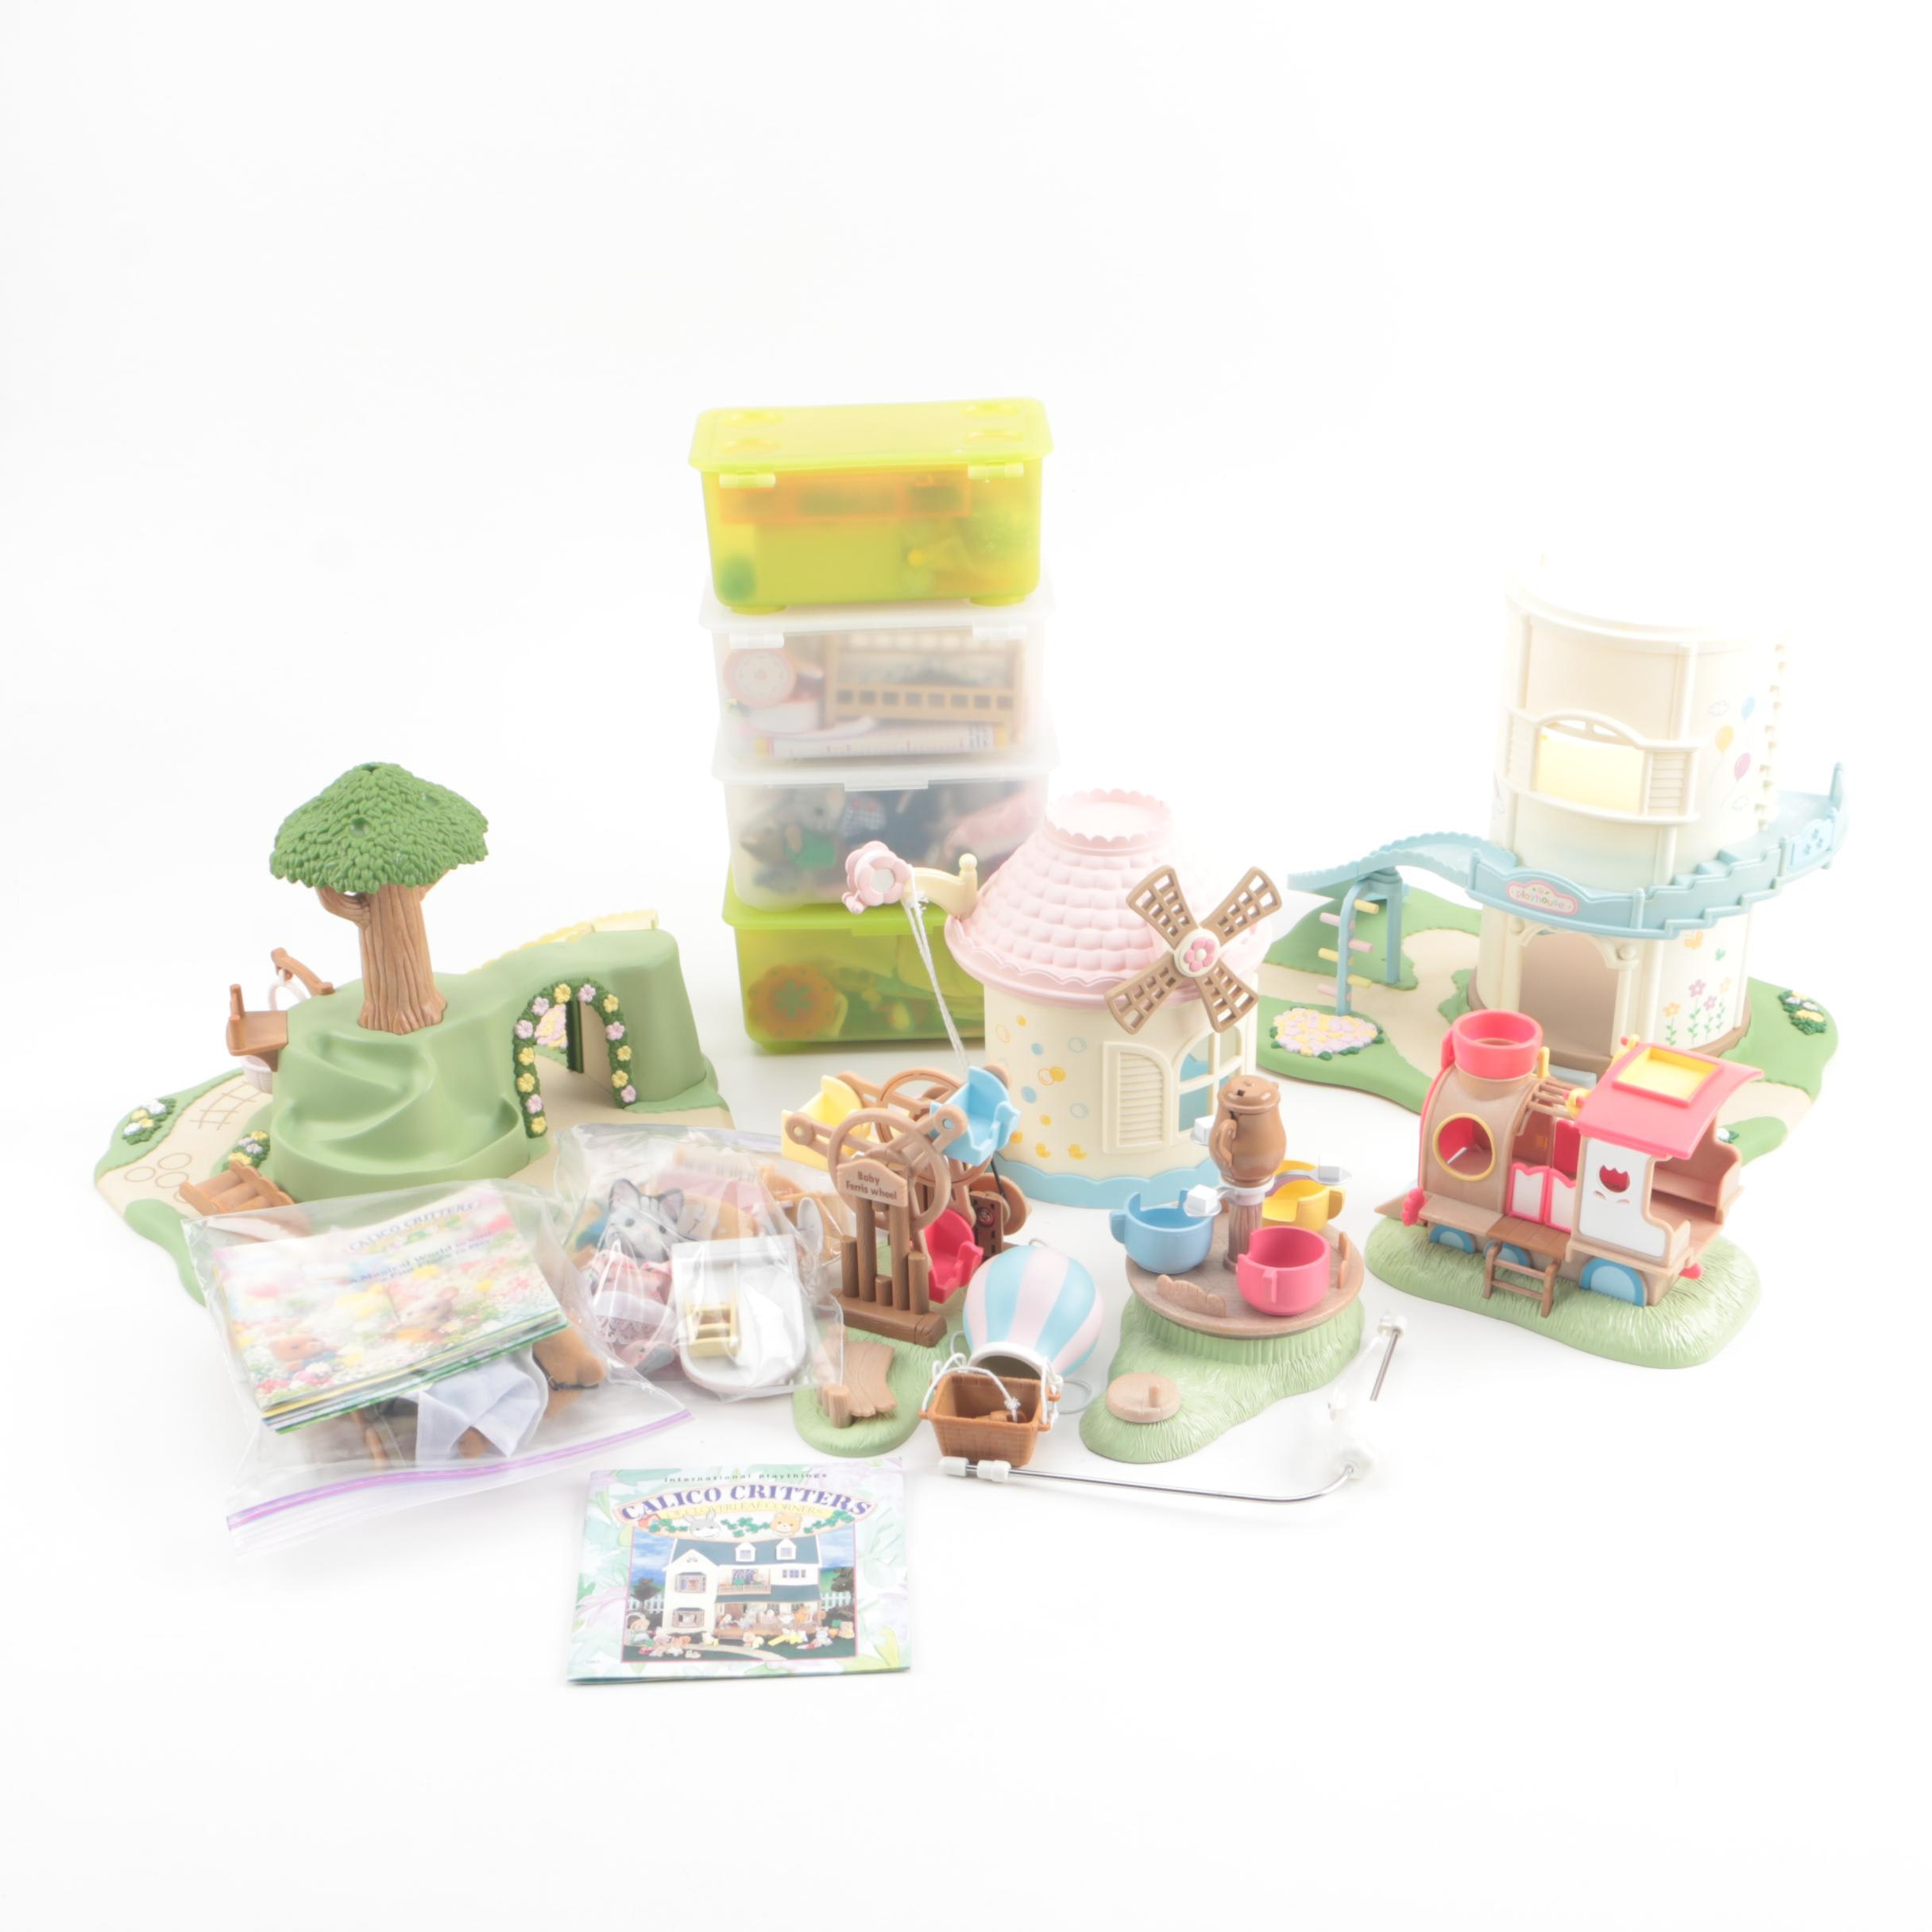 Calico Critters Toys